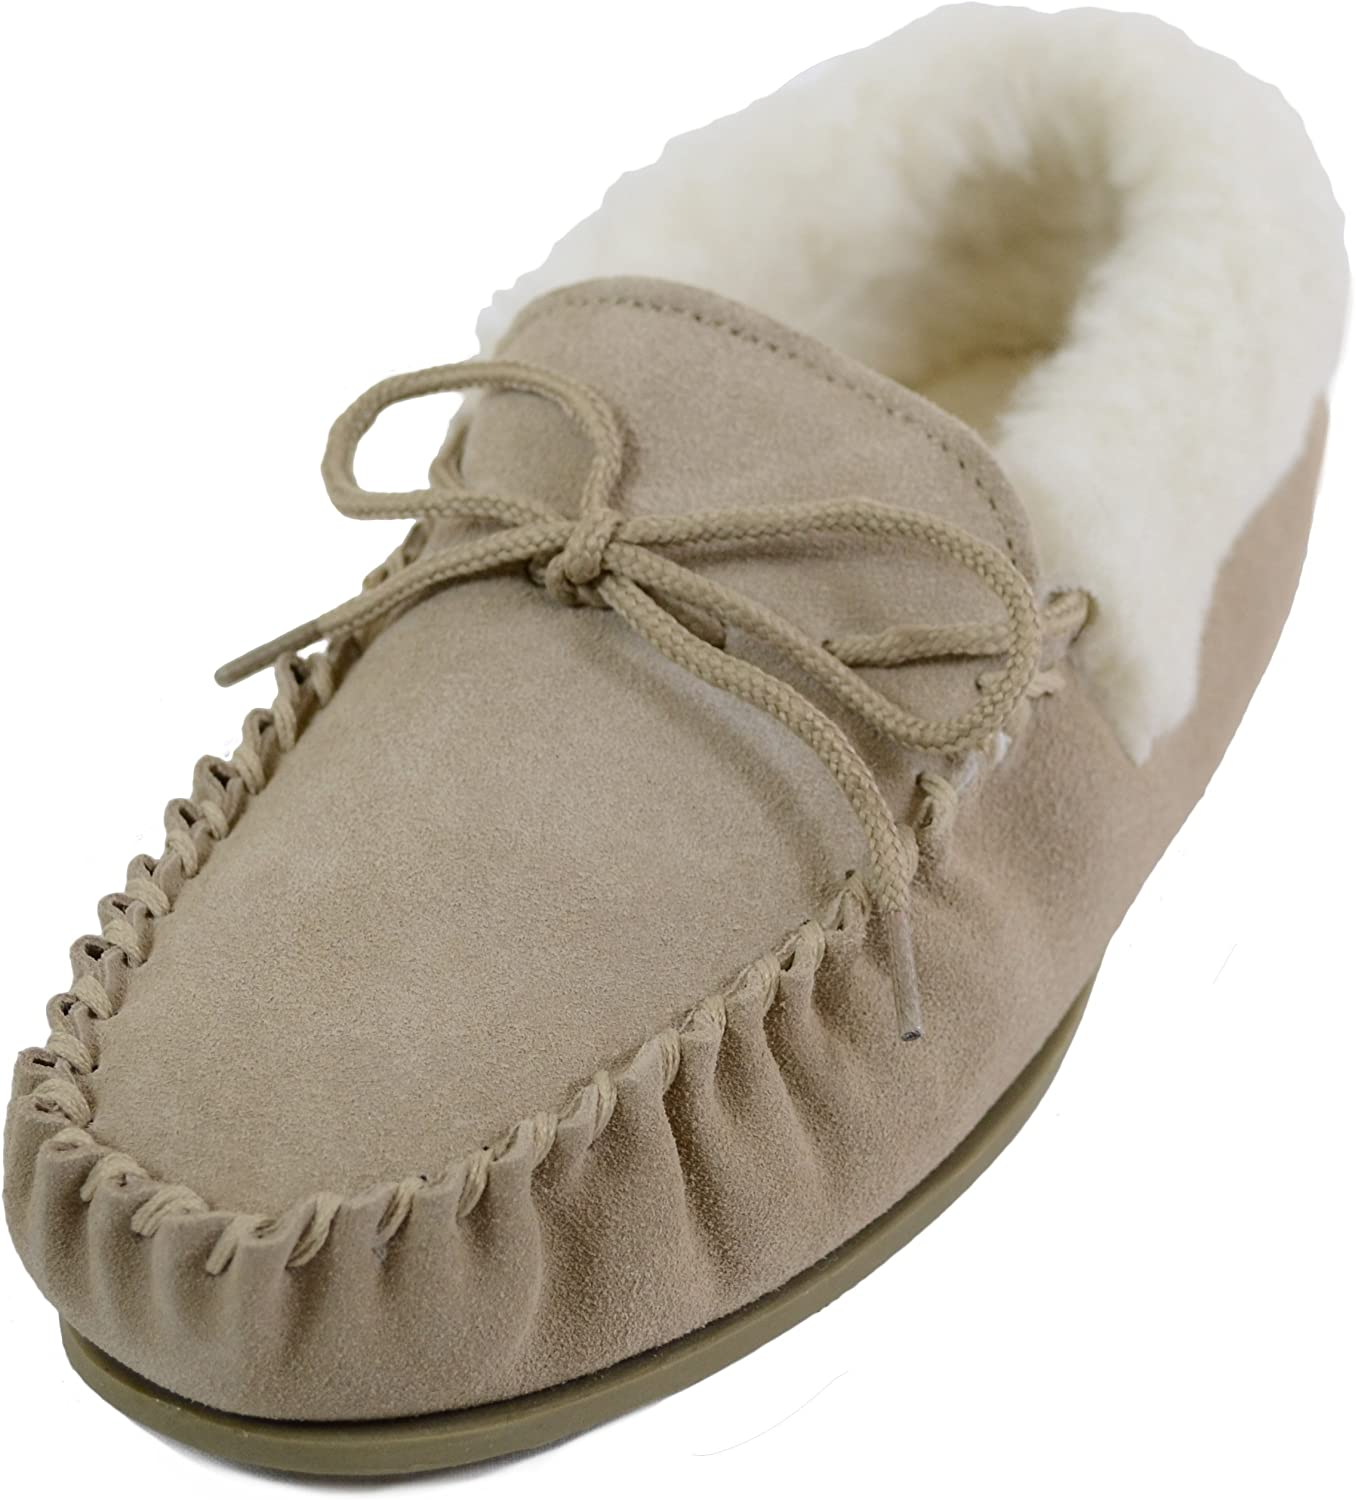 SNUGRUGS Womens Wool Lined Moccasin Slippers with Rubber Sole & Wool Cuff